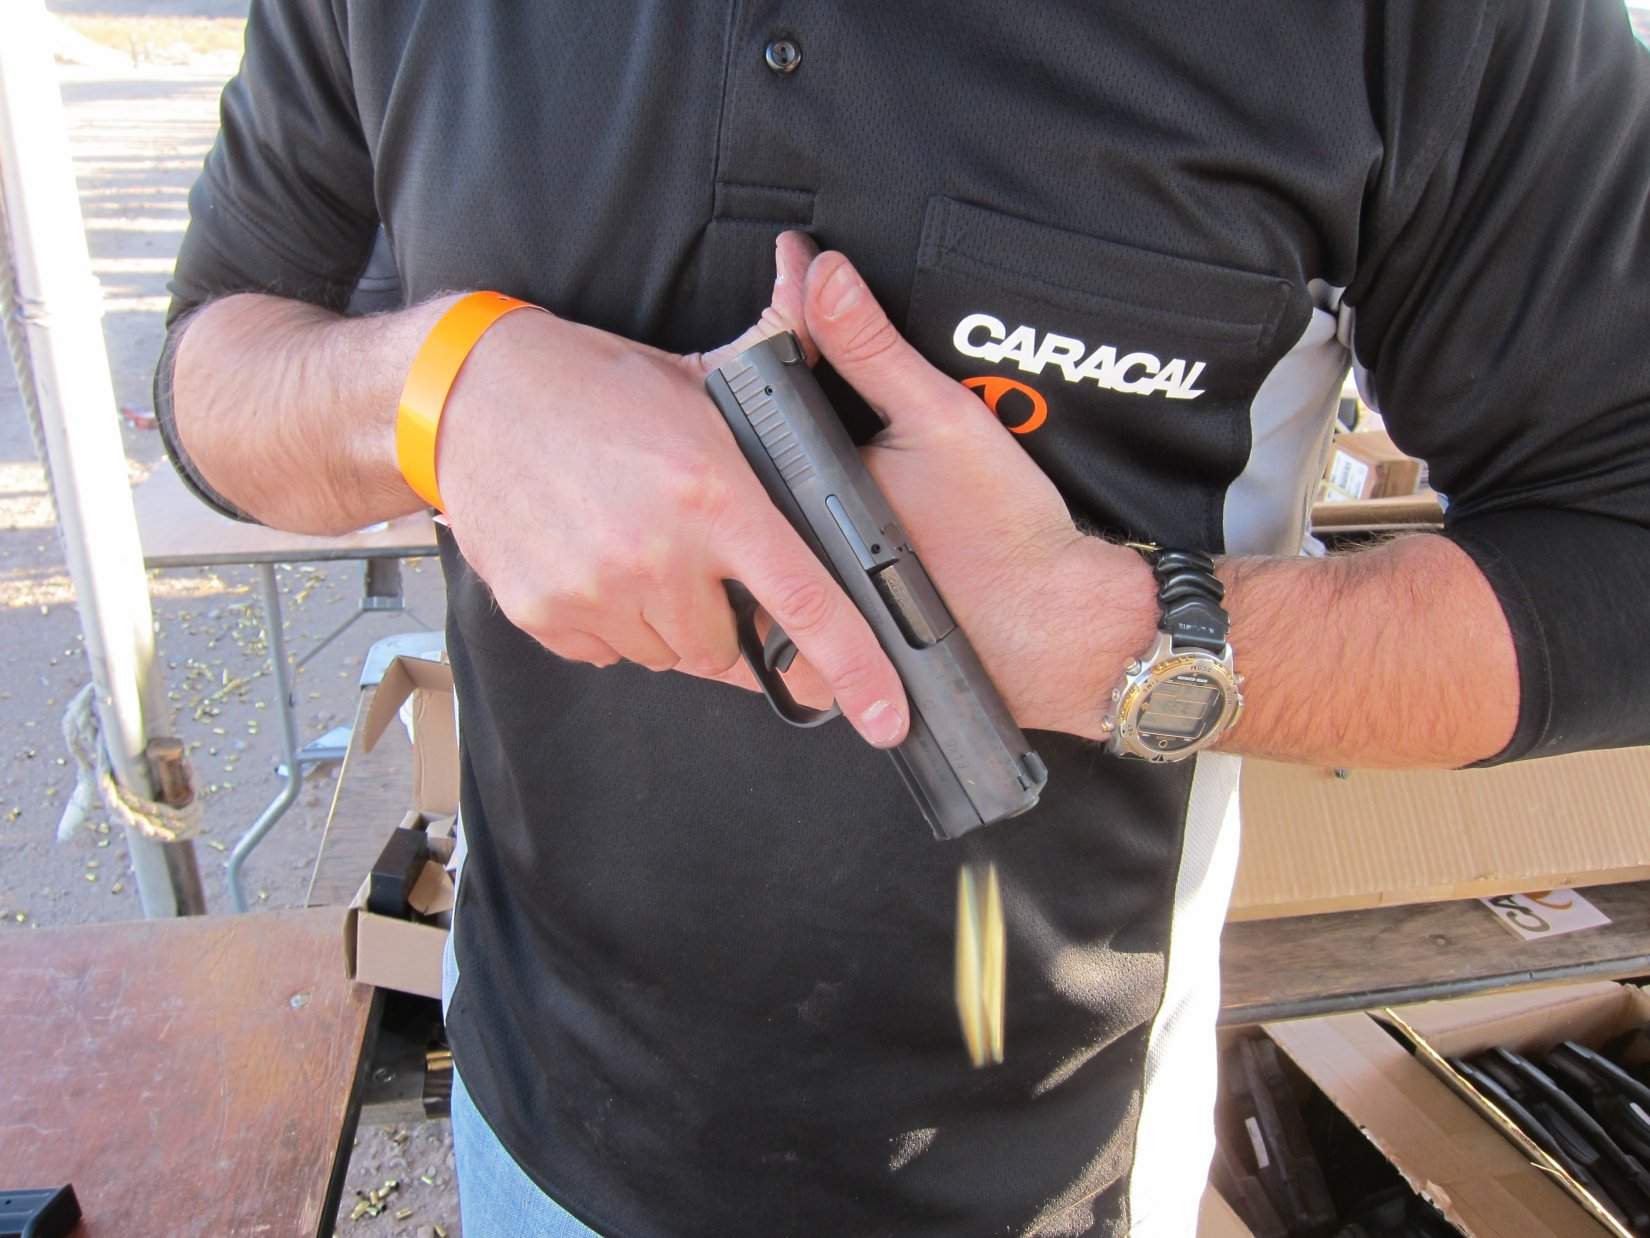 Caracal F and Caracal C Low-Bore-Axis, Striker-Fired Polymer-Frame 9mm Combat Pistols for Concealed Carry (CCW) and Covert Missions: Tactical Pistol Tack Drivers at the Range!